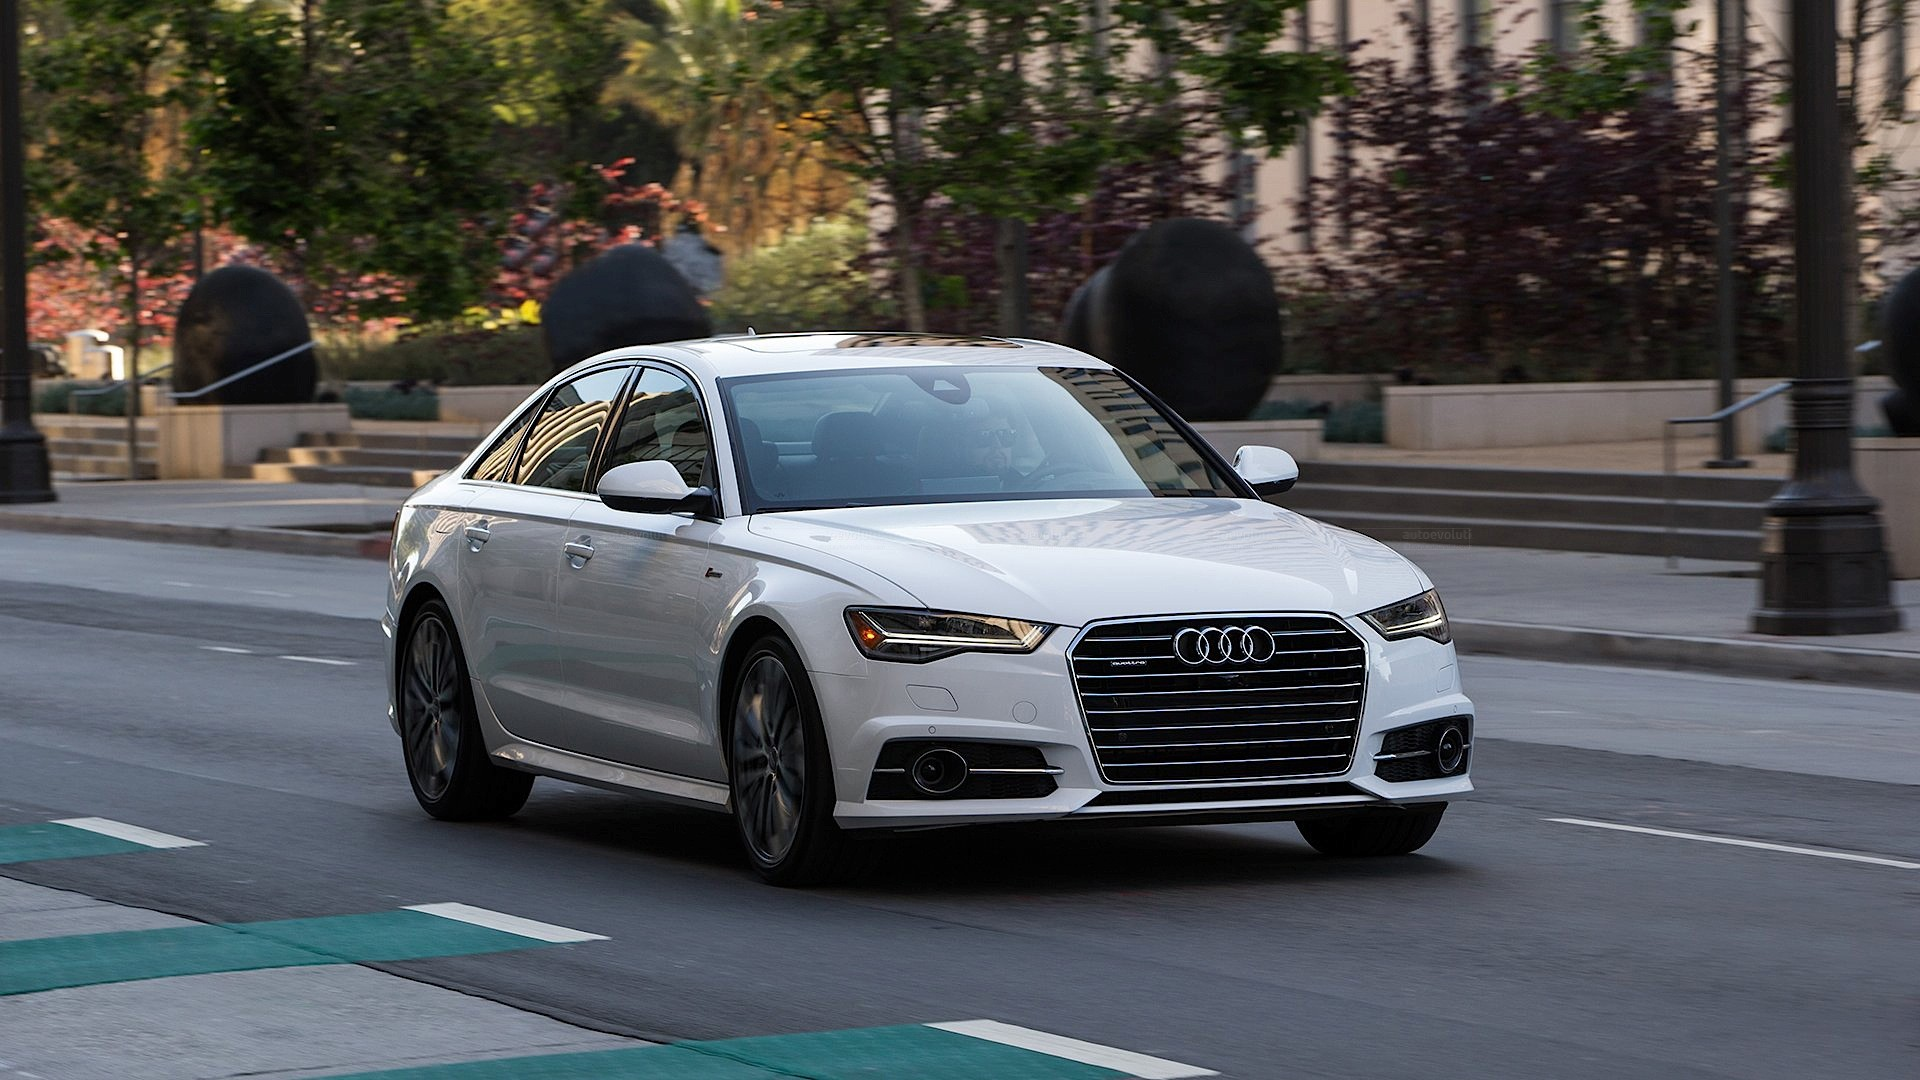 Audi A And A TFSI Quattro Models Look Handsome In Latest US - Audi various models